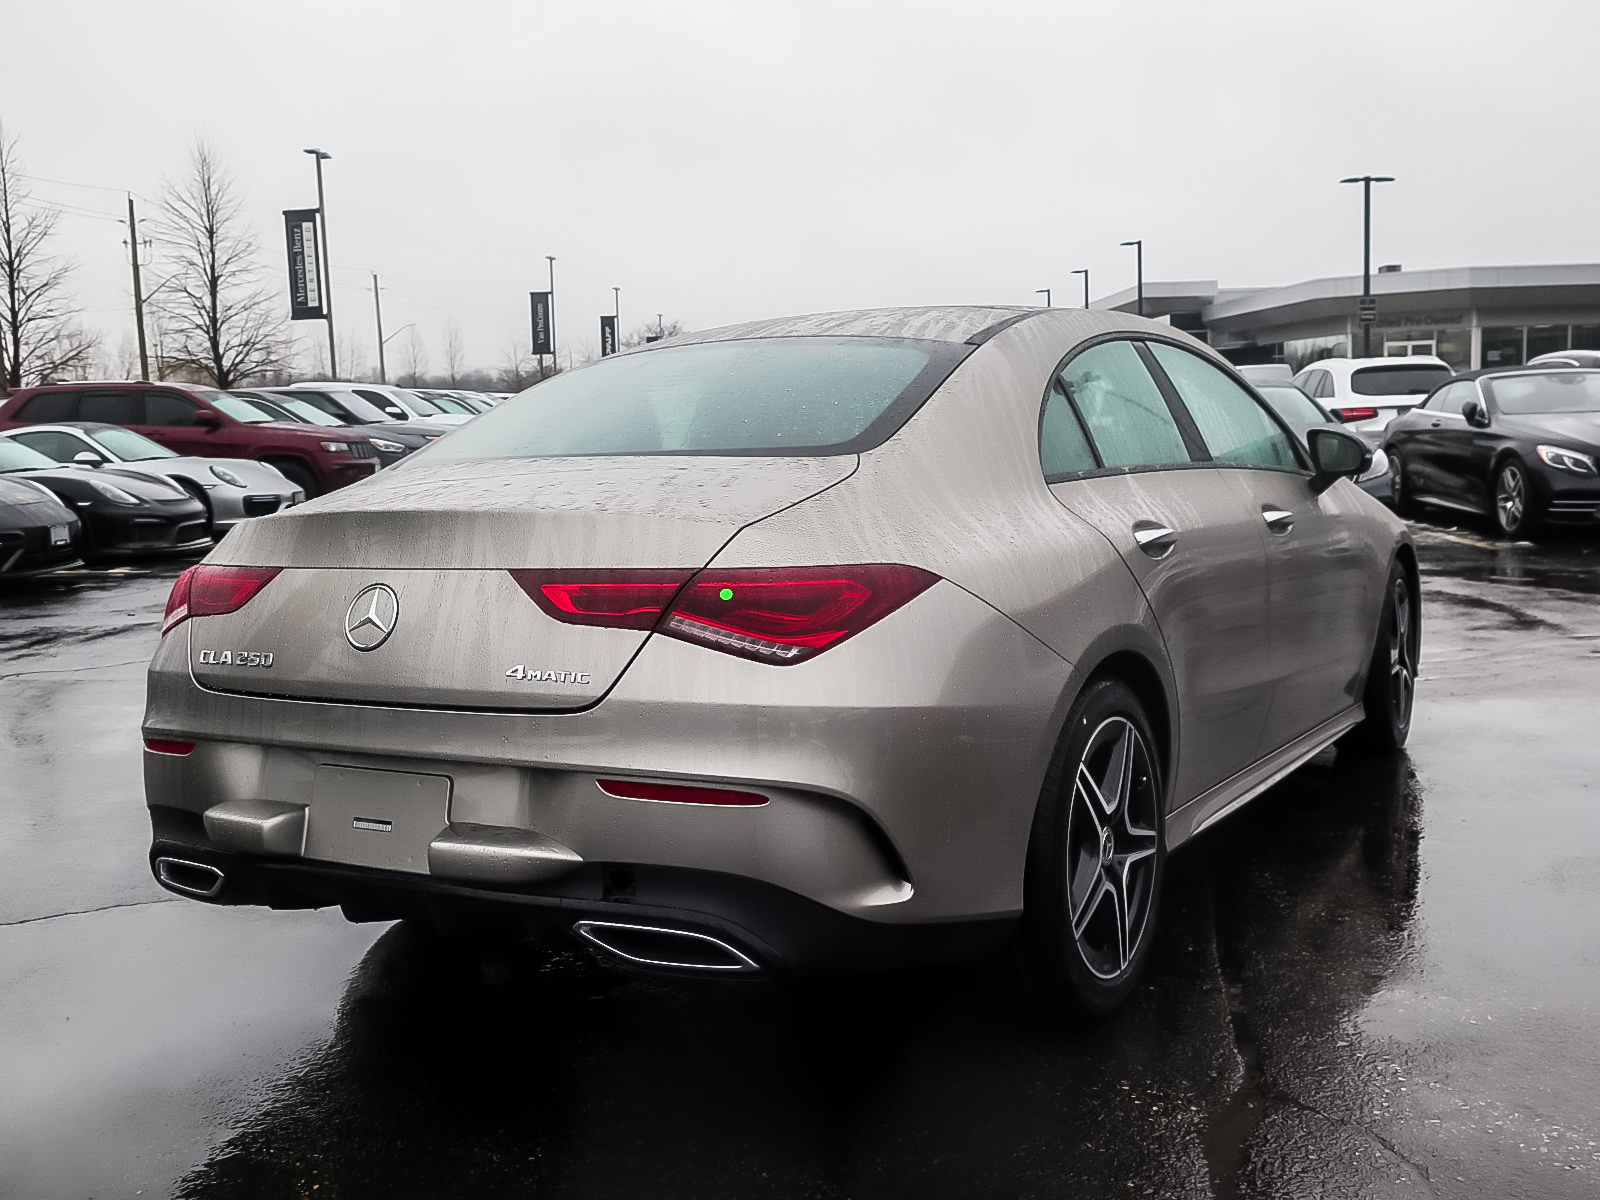 New 2020 Mercedes-Benz CLA250 4MATIC Coupe 4-Door Coupe in ...